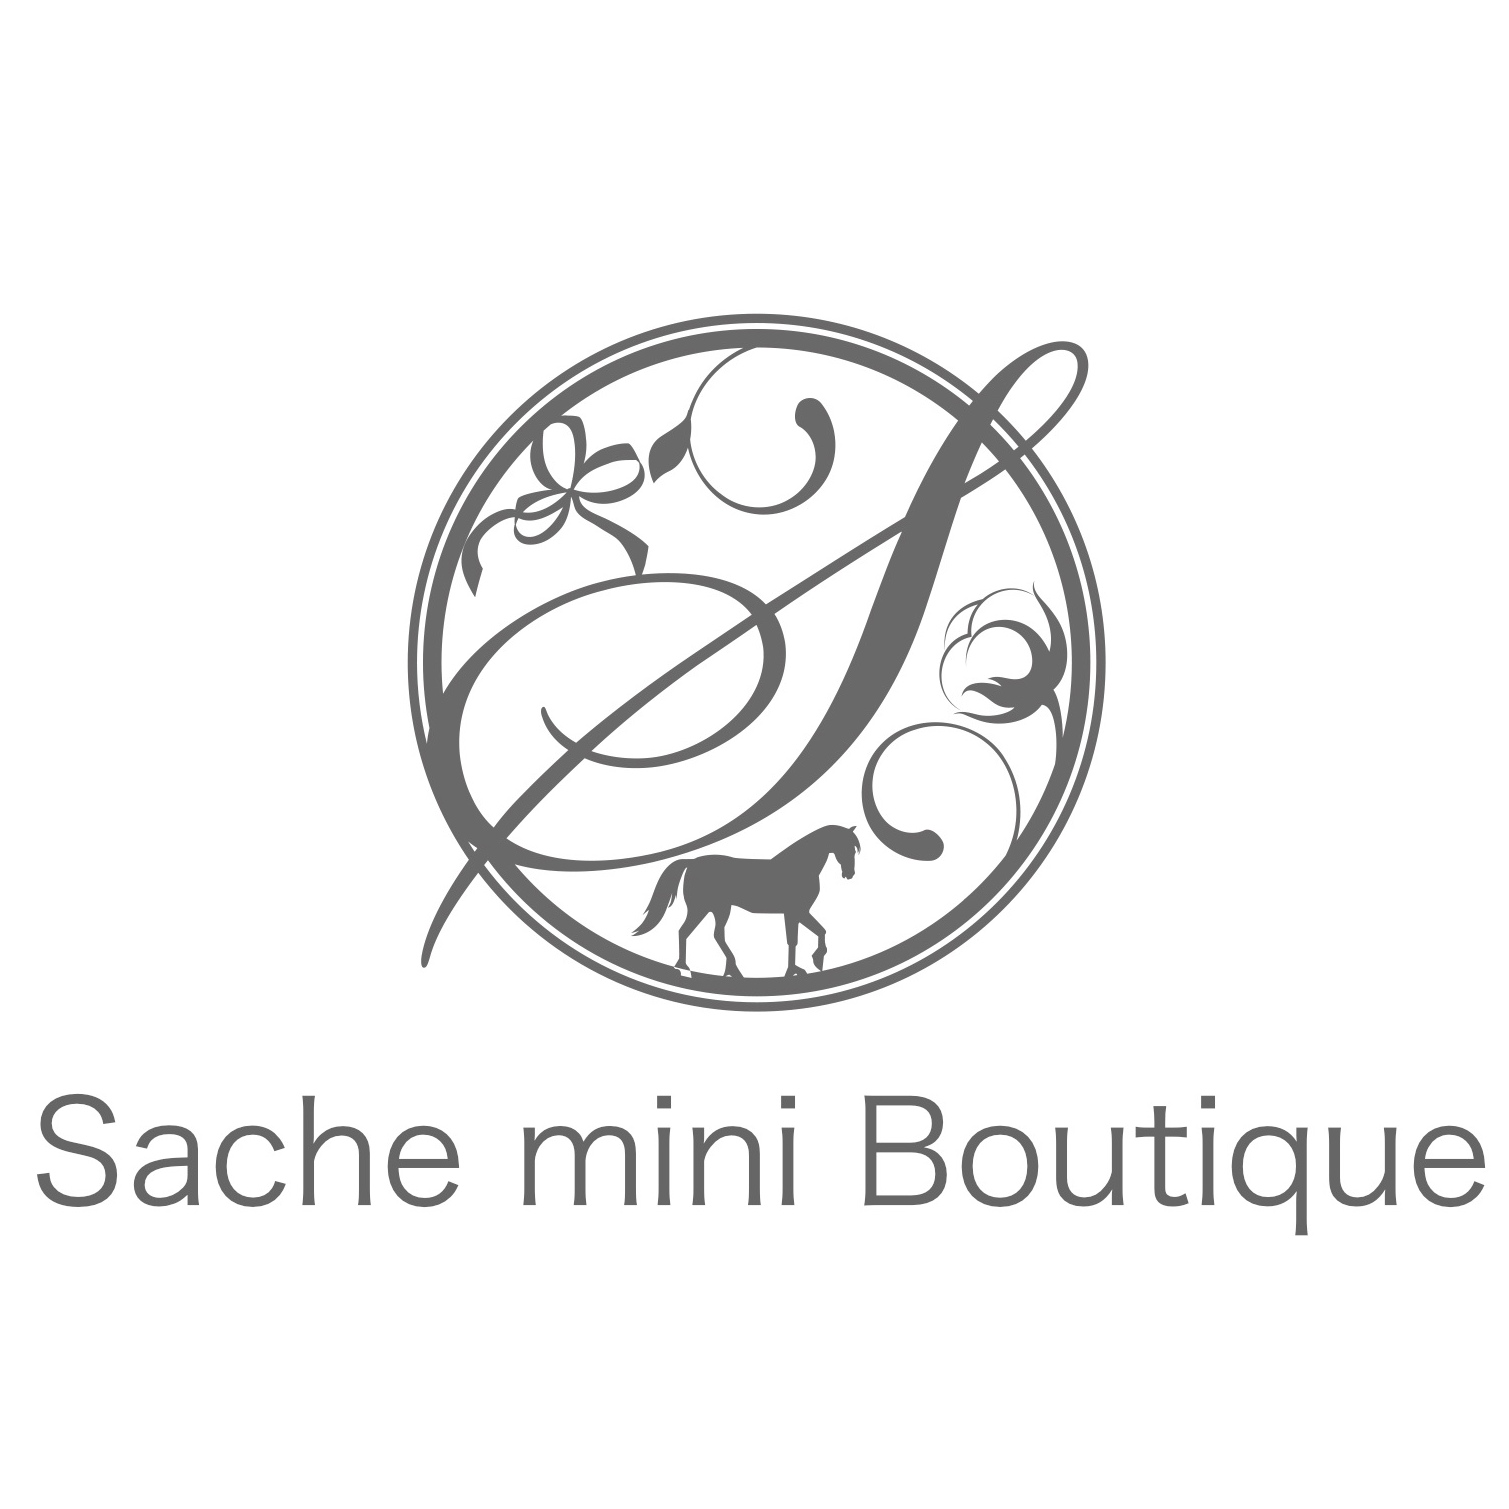 Sache mini Boutique